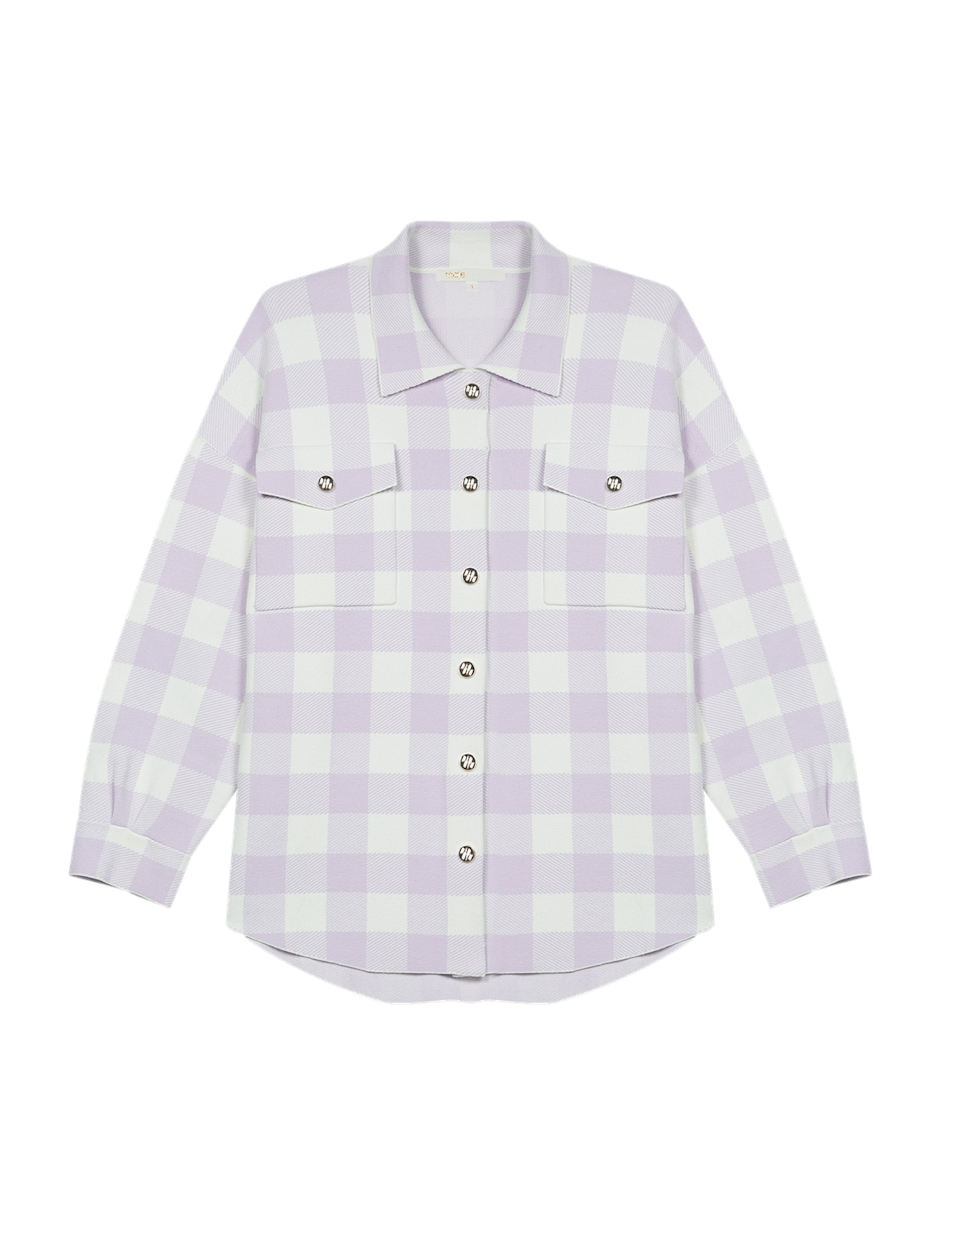 """<p>Maje has created the perfect pastel outerwear to see you through from spring to summer.</p><p><a class=""""link rapid-noclick-resp"""" href=""""https://uk.maje.com/en/ready-to-wear/collection/pullovers-and-cardigans/221michael/MFPCA00165.html?dwvar_MFPCA00165_color=P005&gclid=Cj0KCQjwo-aCBhC-ARIsAAkNQitt85-A2co95lV9uDT8Mc_TMlX-M2jDzGScVqp81bG3StVY5Fy6QWAaAgSjEALw_wcB"""" rel=""""nofollow noopener"""" target=""""_blank"""" data-ylk=""""slk:SHOP NOW"""">SHOP NOW</a></p><p>£299, Maje.</p>"""